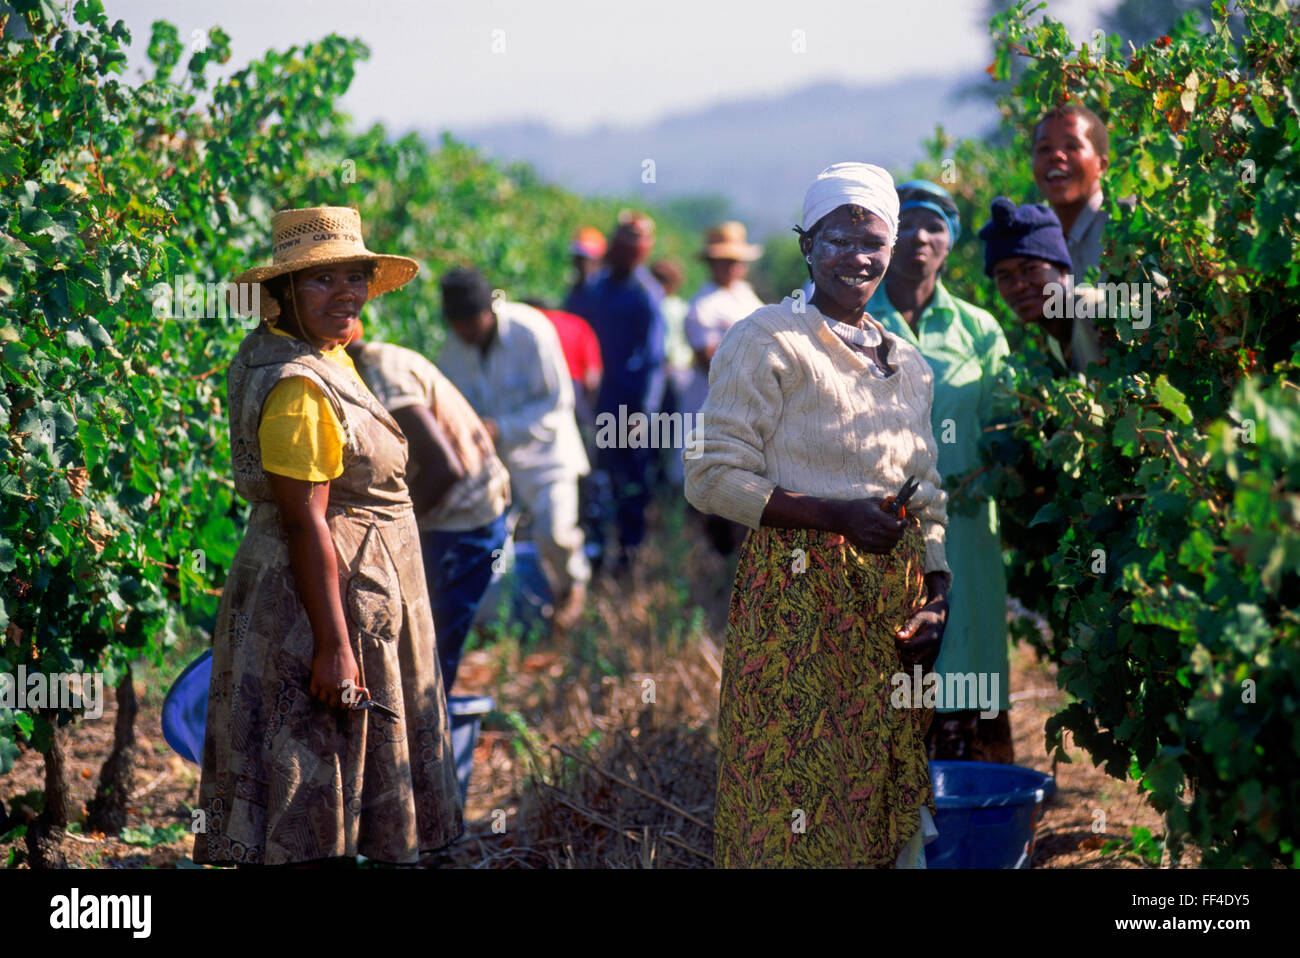 Grape harvesting in the vineyards at Stellenbosch, a town in the Western Cape province of South Africa - Stock Image